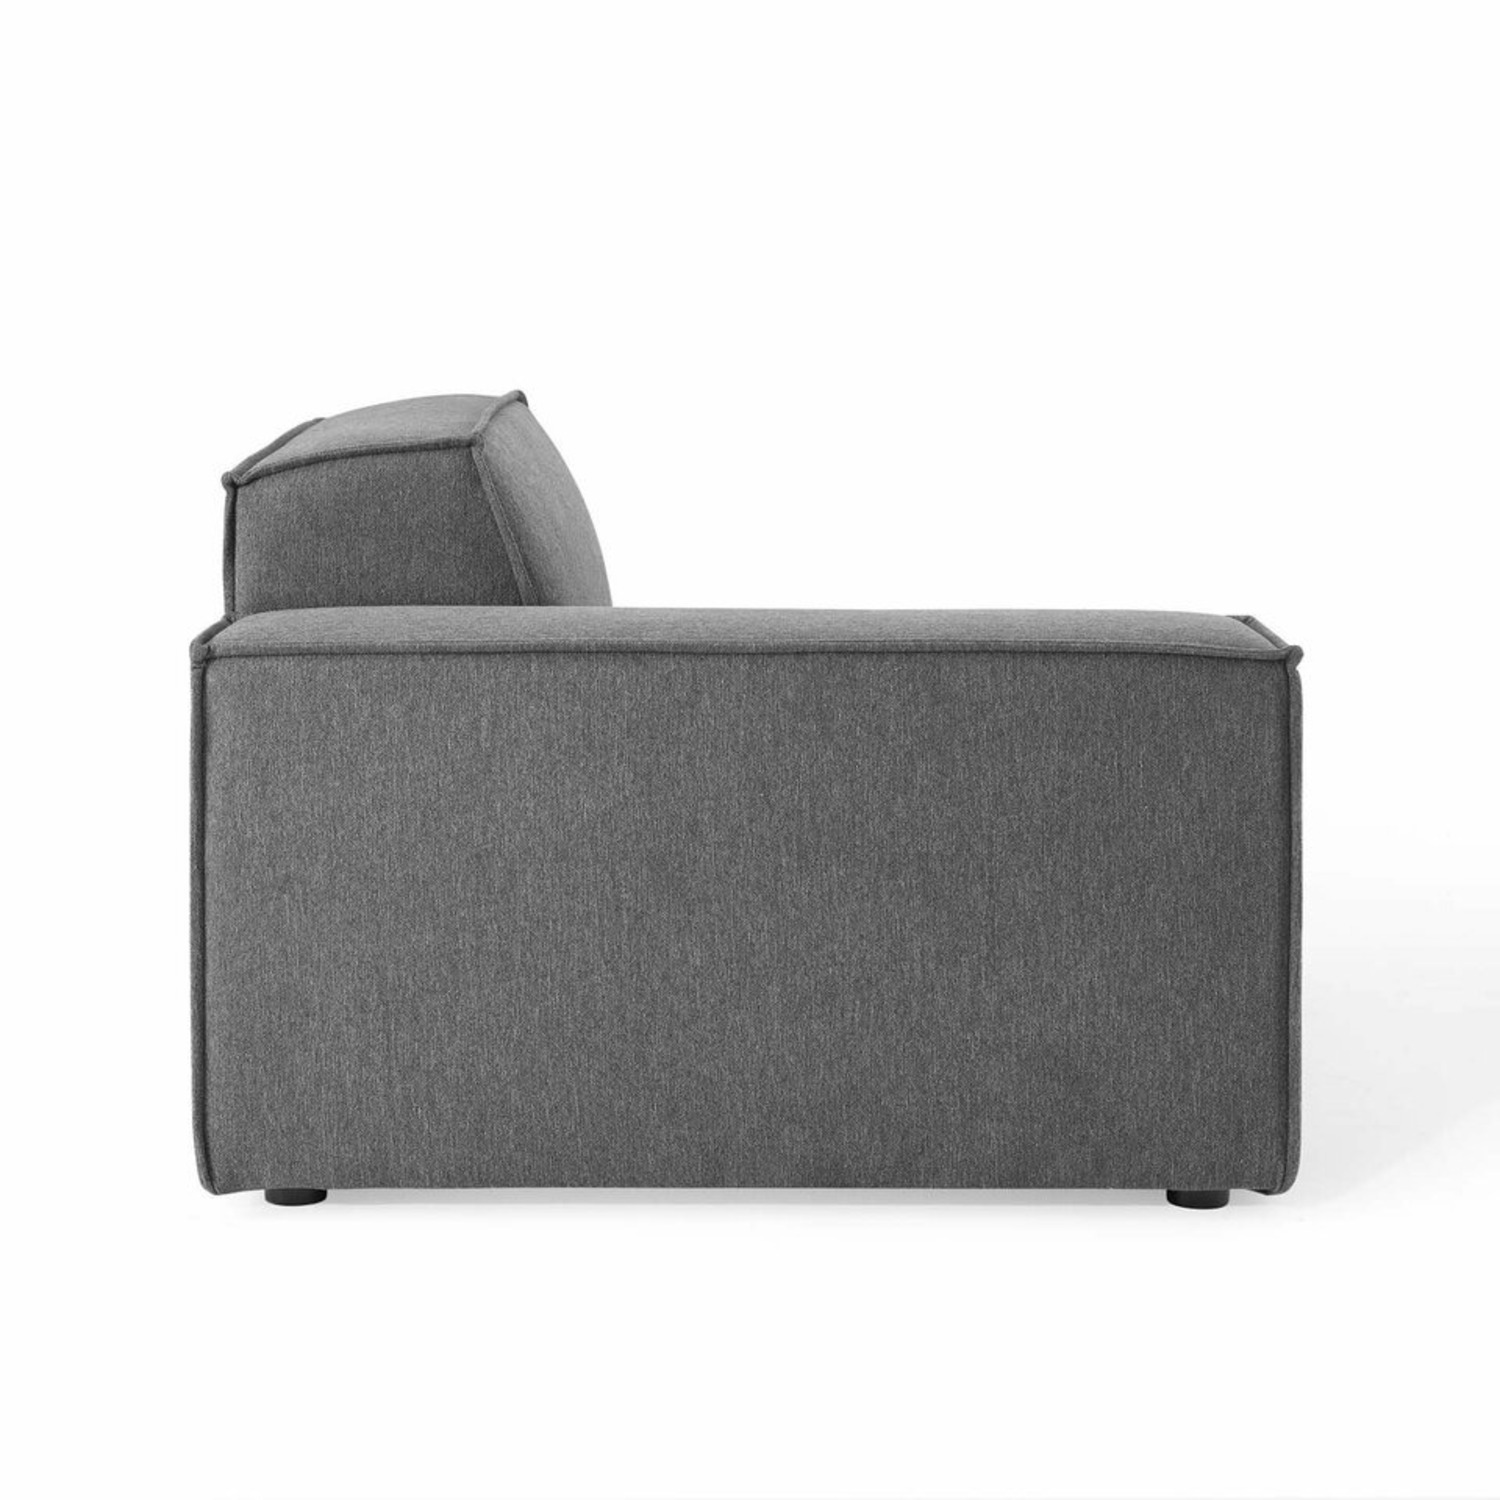 5-Piece Sectional Sofa In CharcoalW/ Piping Detail - image-5